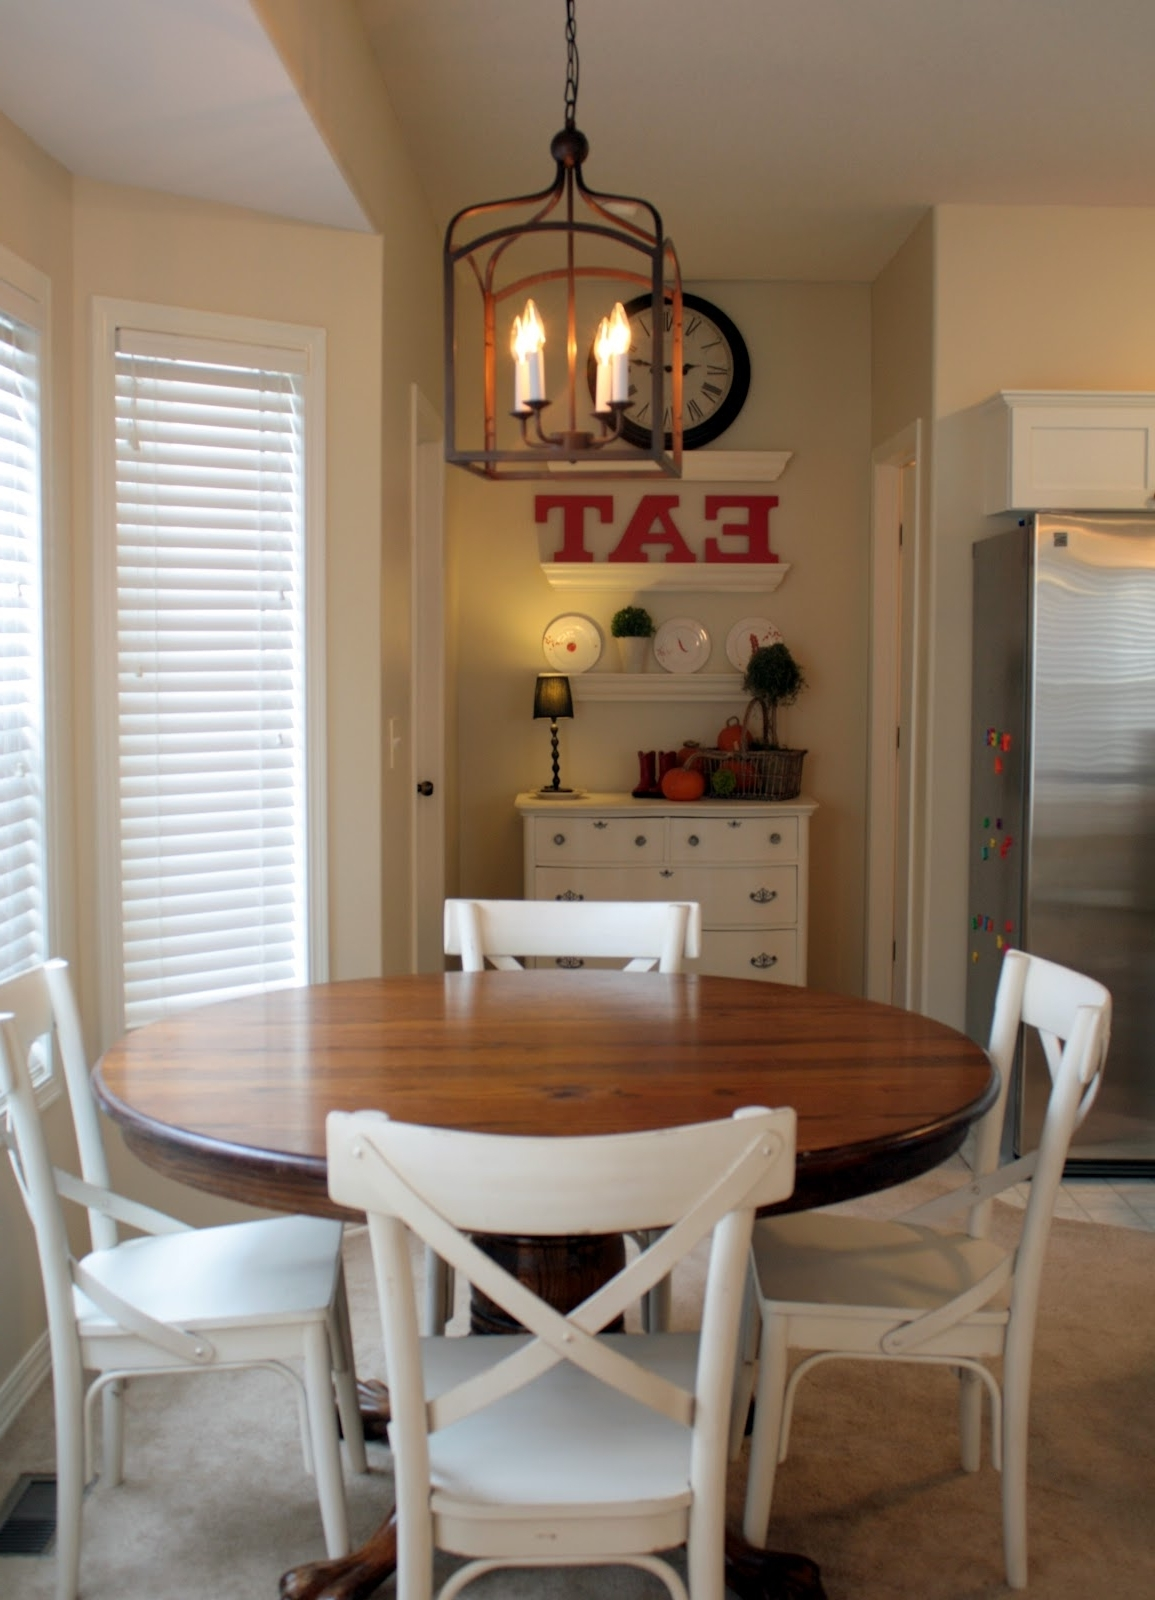 Favorite Image 9057 From Post: Kitchen Table Lighting – With Contemporary With Over Dining Tables Lighting (View 13 of 25)